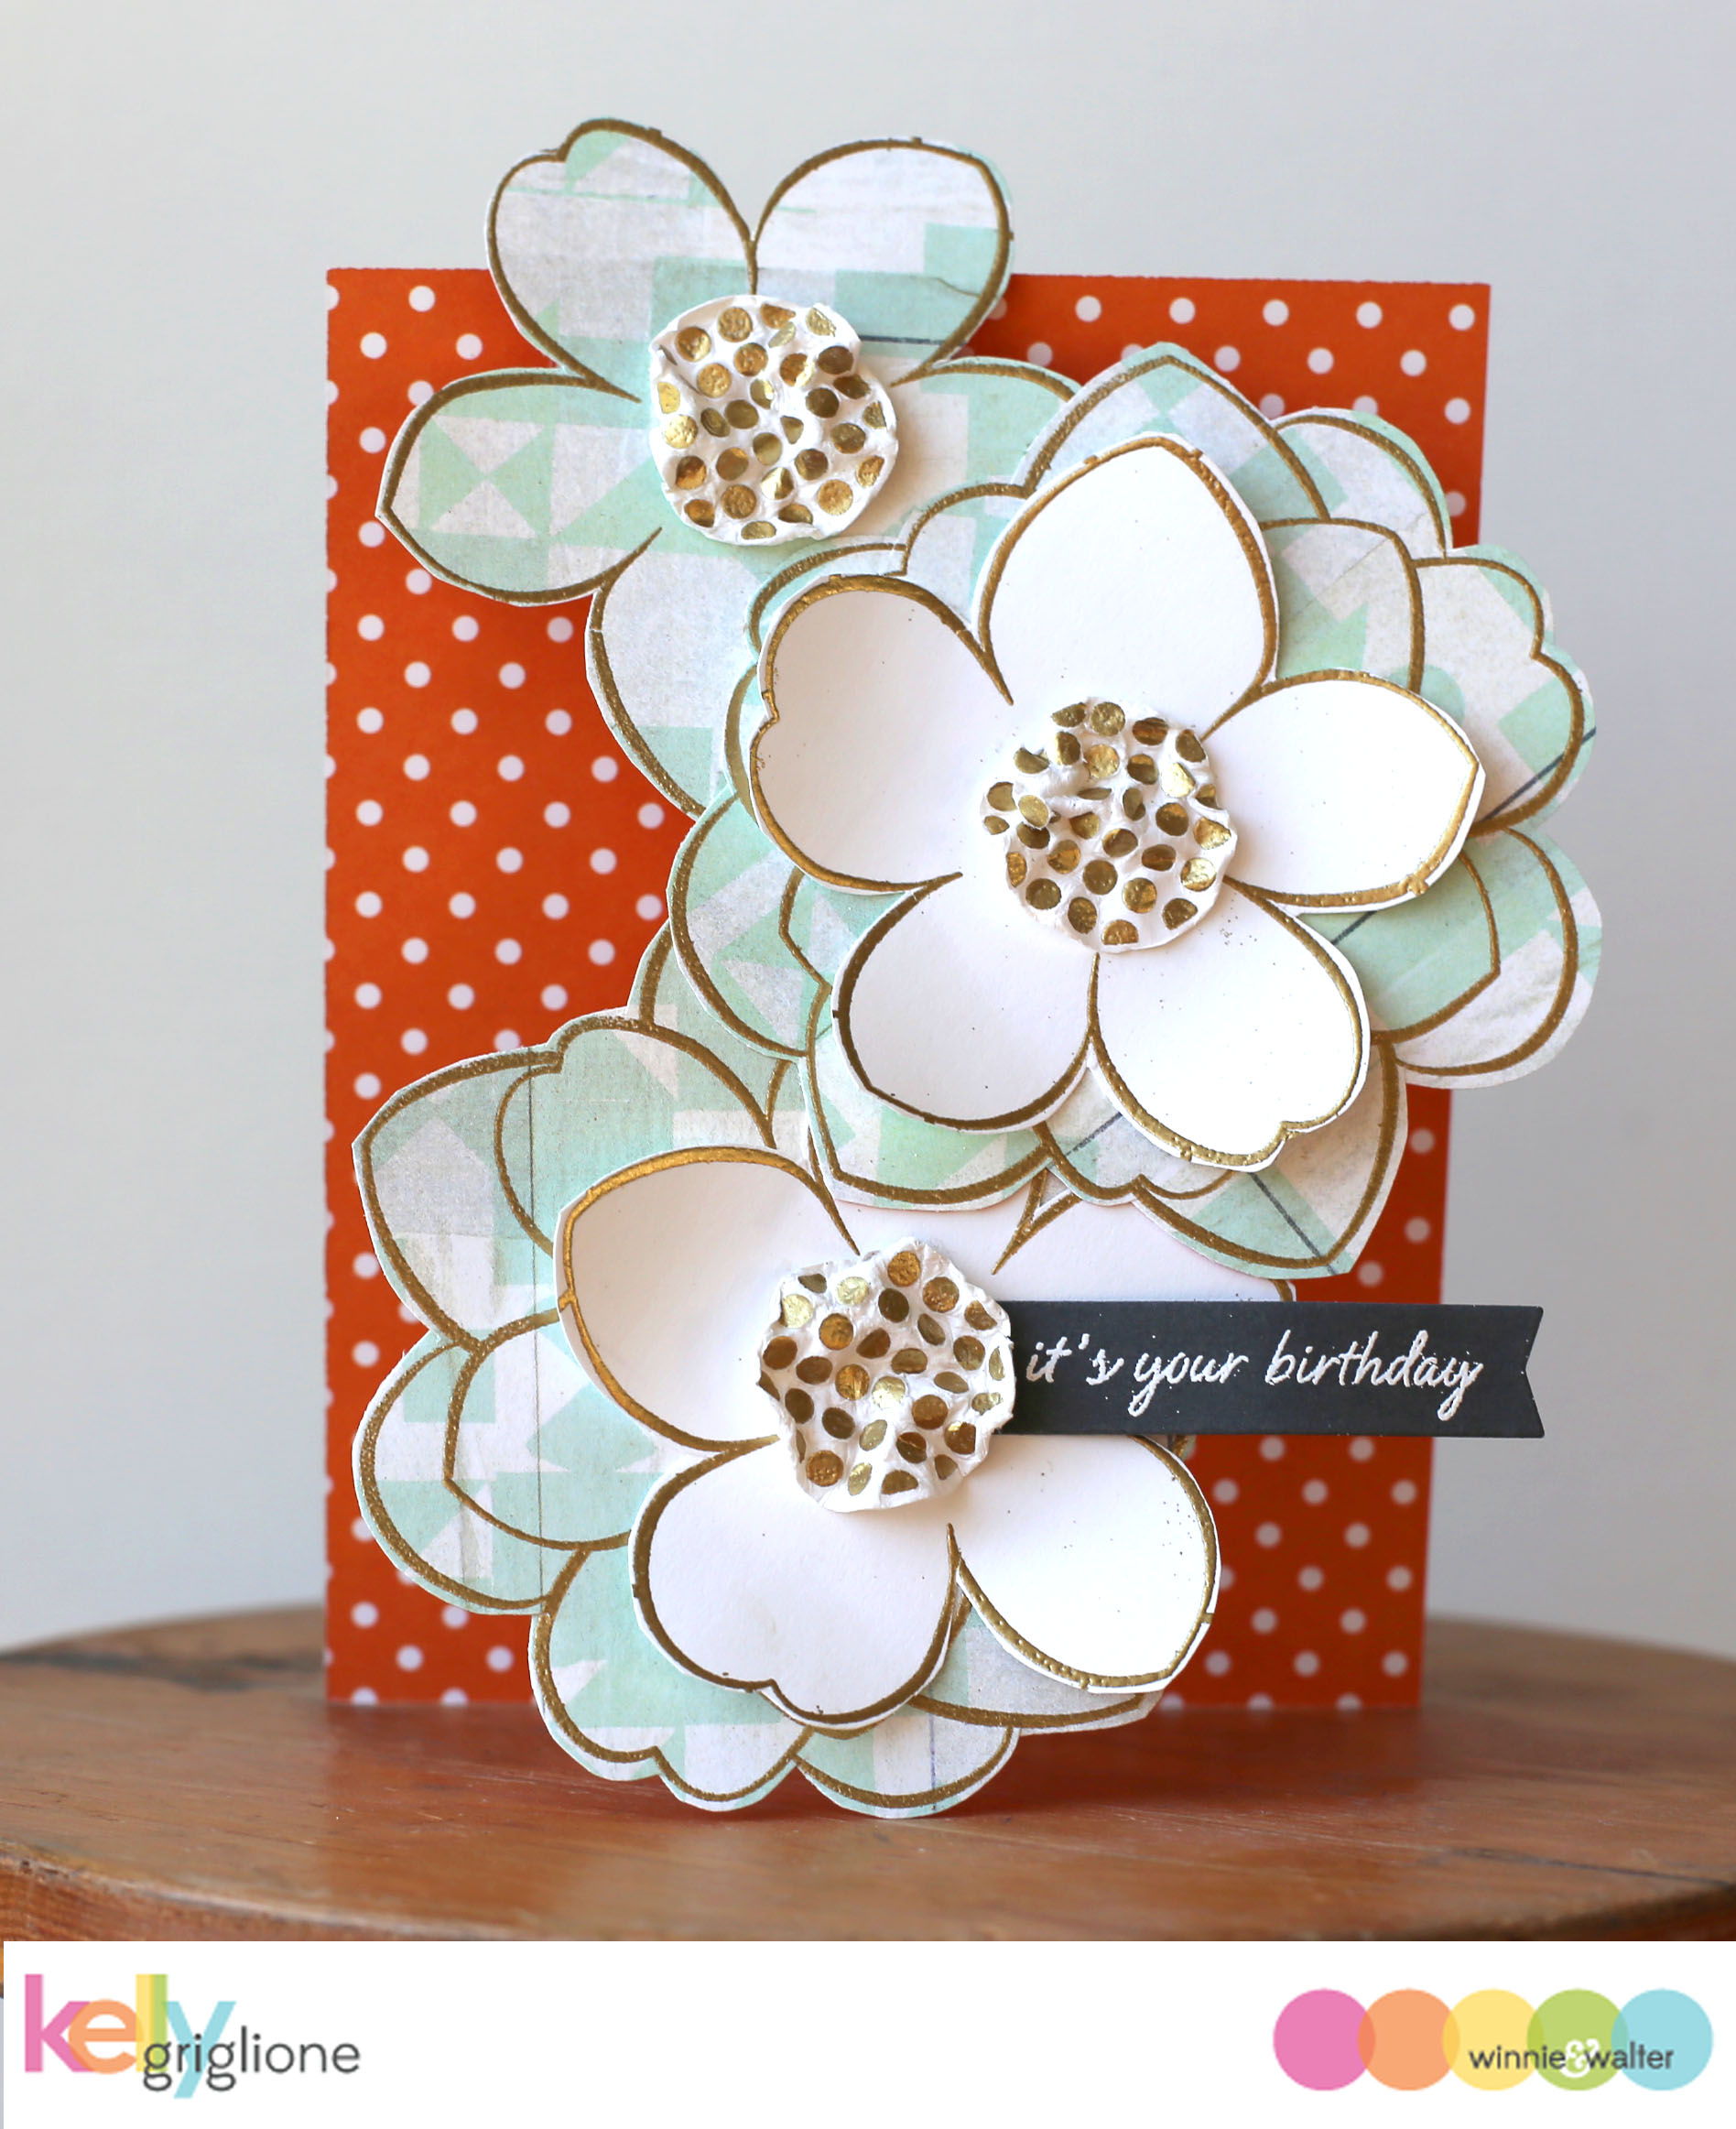 kelly_Simon Says Stamp Big Bloom 3D Flower Card